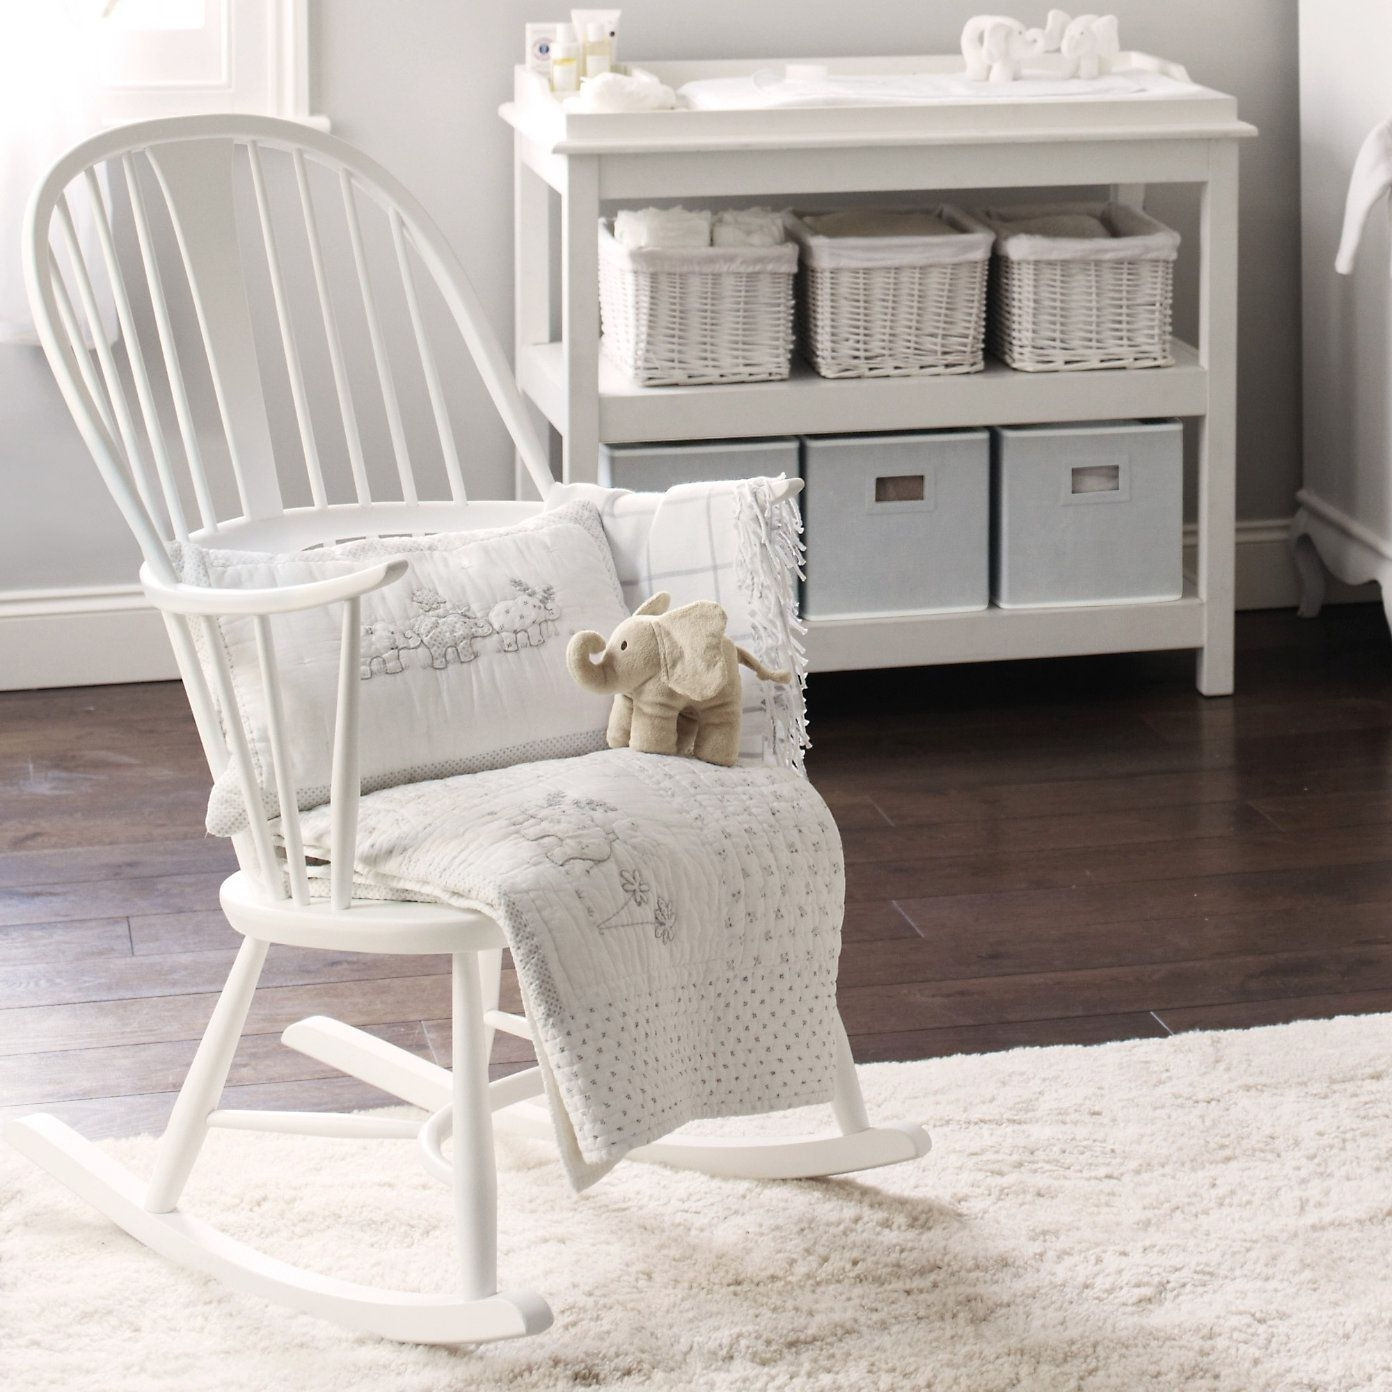 Recent Rocking Chairs For Baby Room For Buy Lookbooks > Home > Ercol Rocking Chair – White From The White (View 4 of 15)